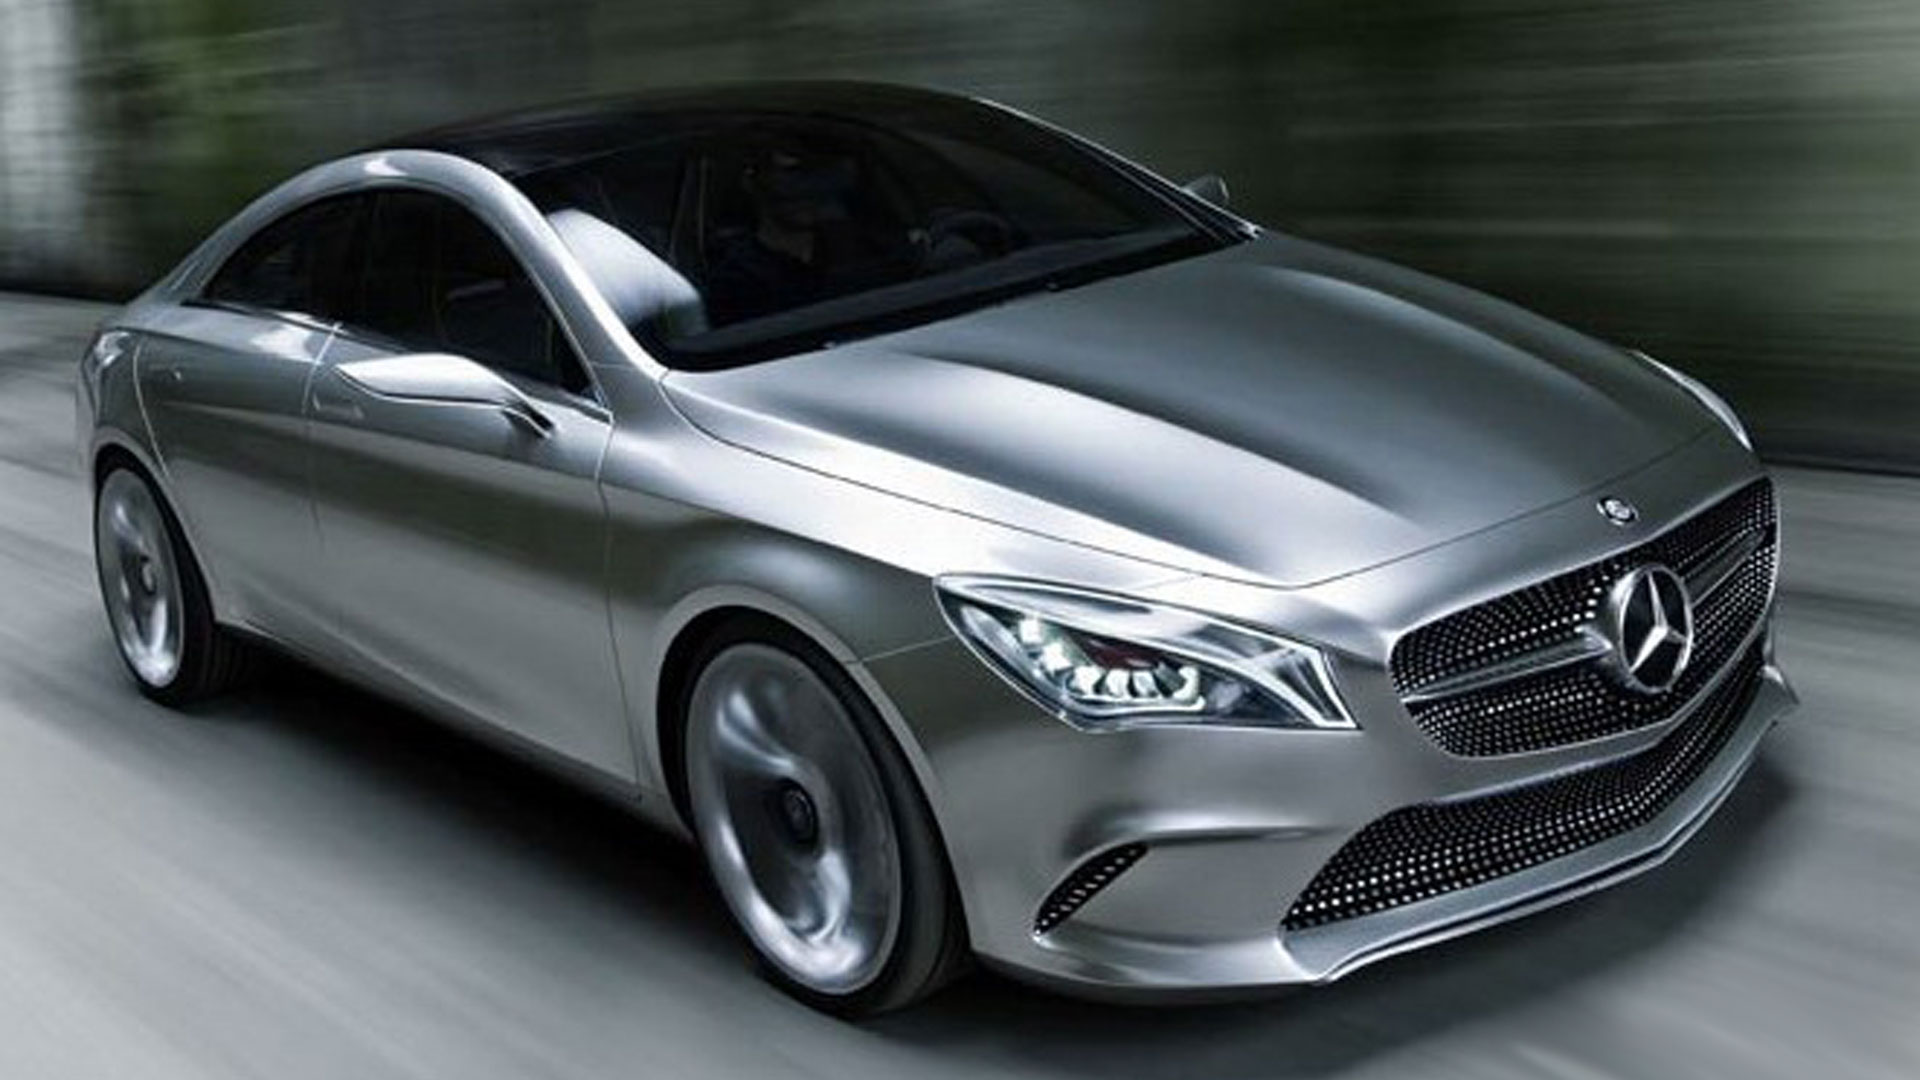 Mercedes Benz Wallpapers HD For Desktop Free Download Image Of